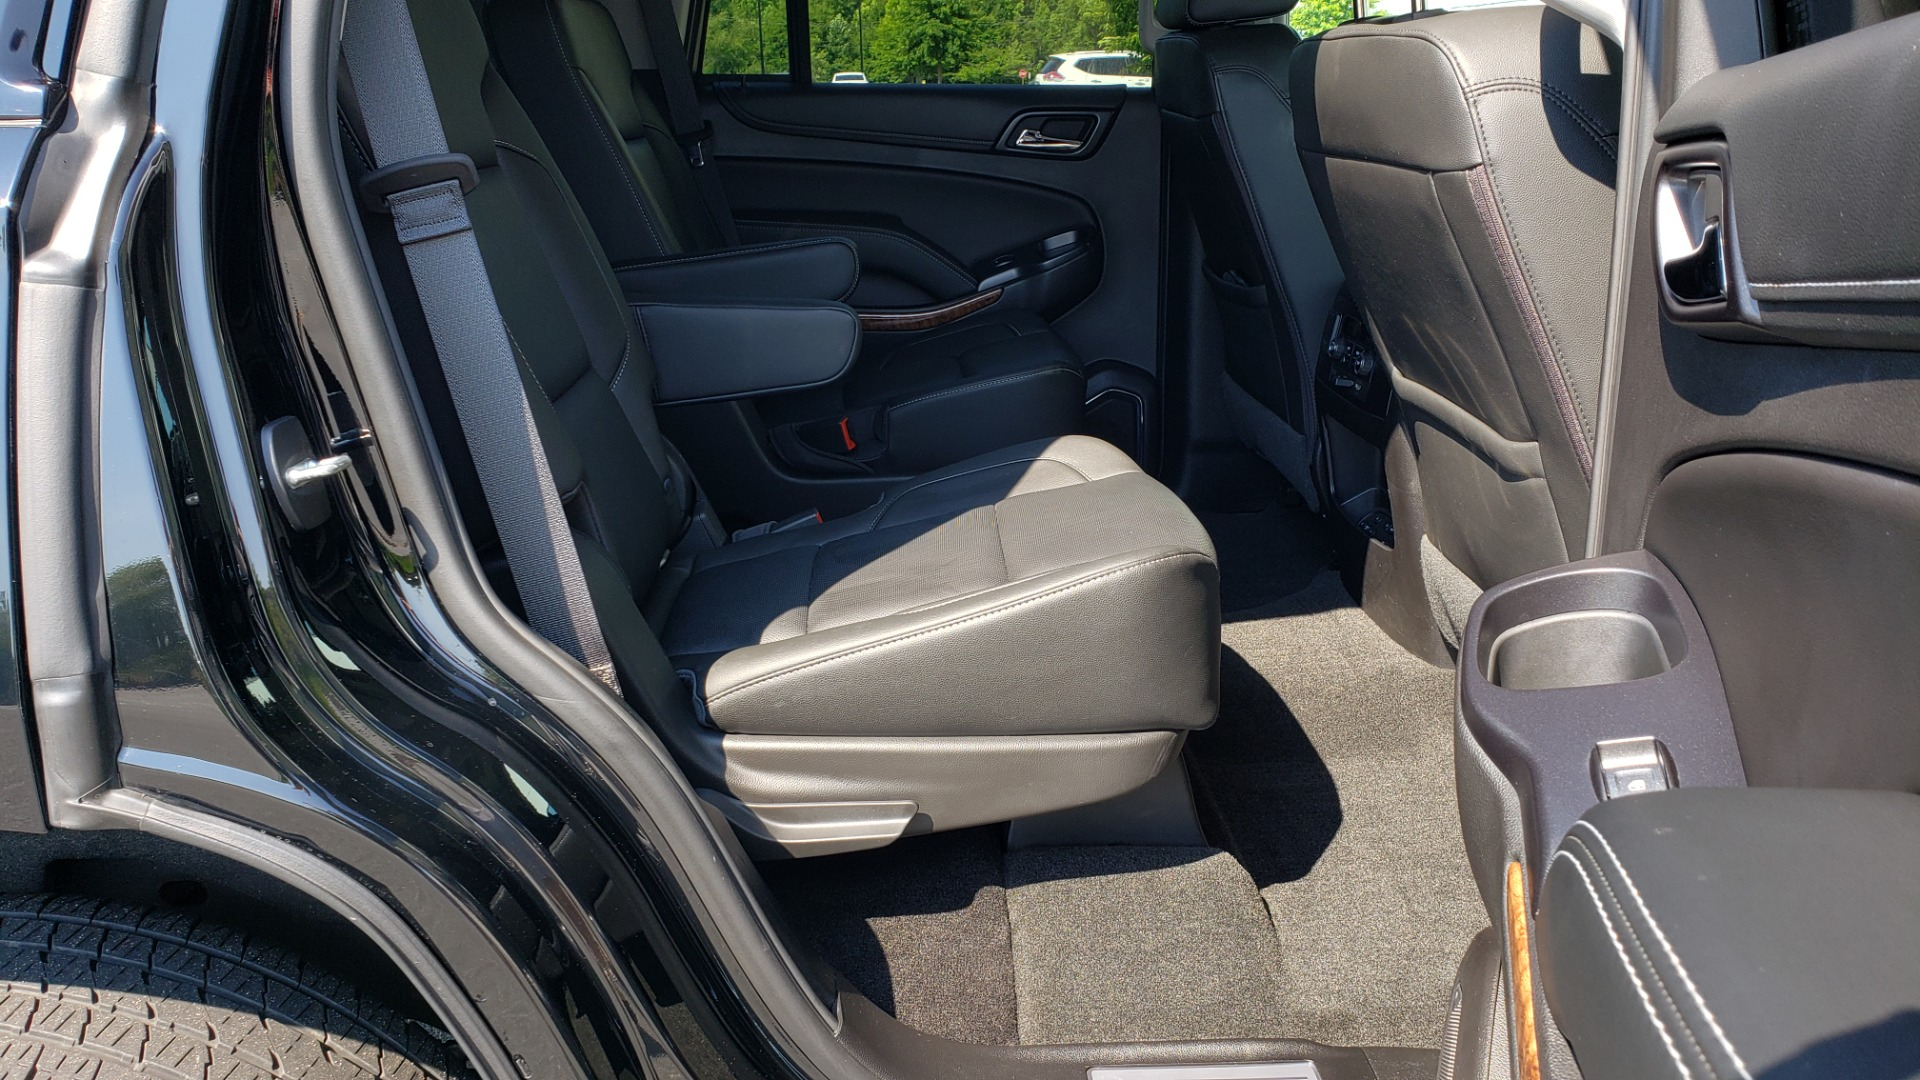 Used 2018 Chevrolet TAHOE PREMIER RST / 4X4 / NAV / BOSE / SUNROOF / 3-ROW / REARVIEW for sale $65,995 at Formula Imports in Charlotte NC 28227 78